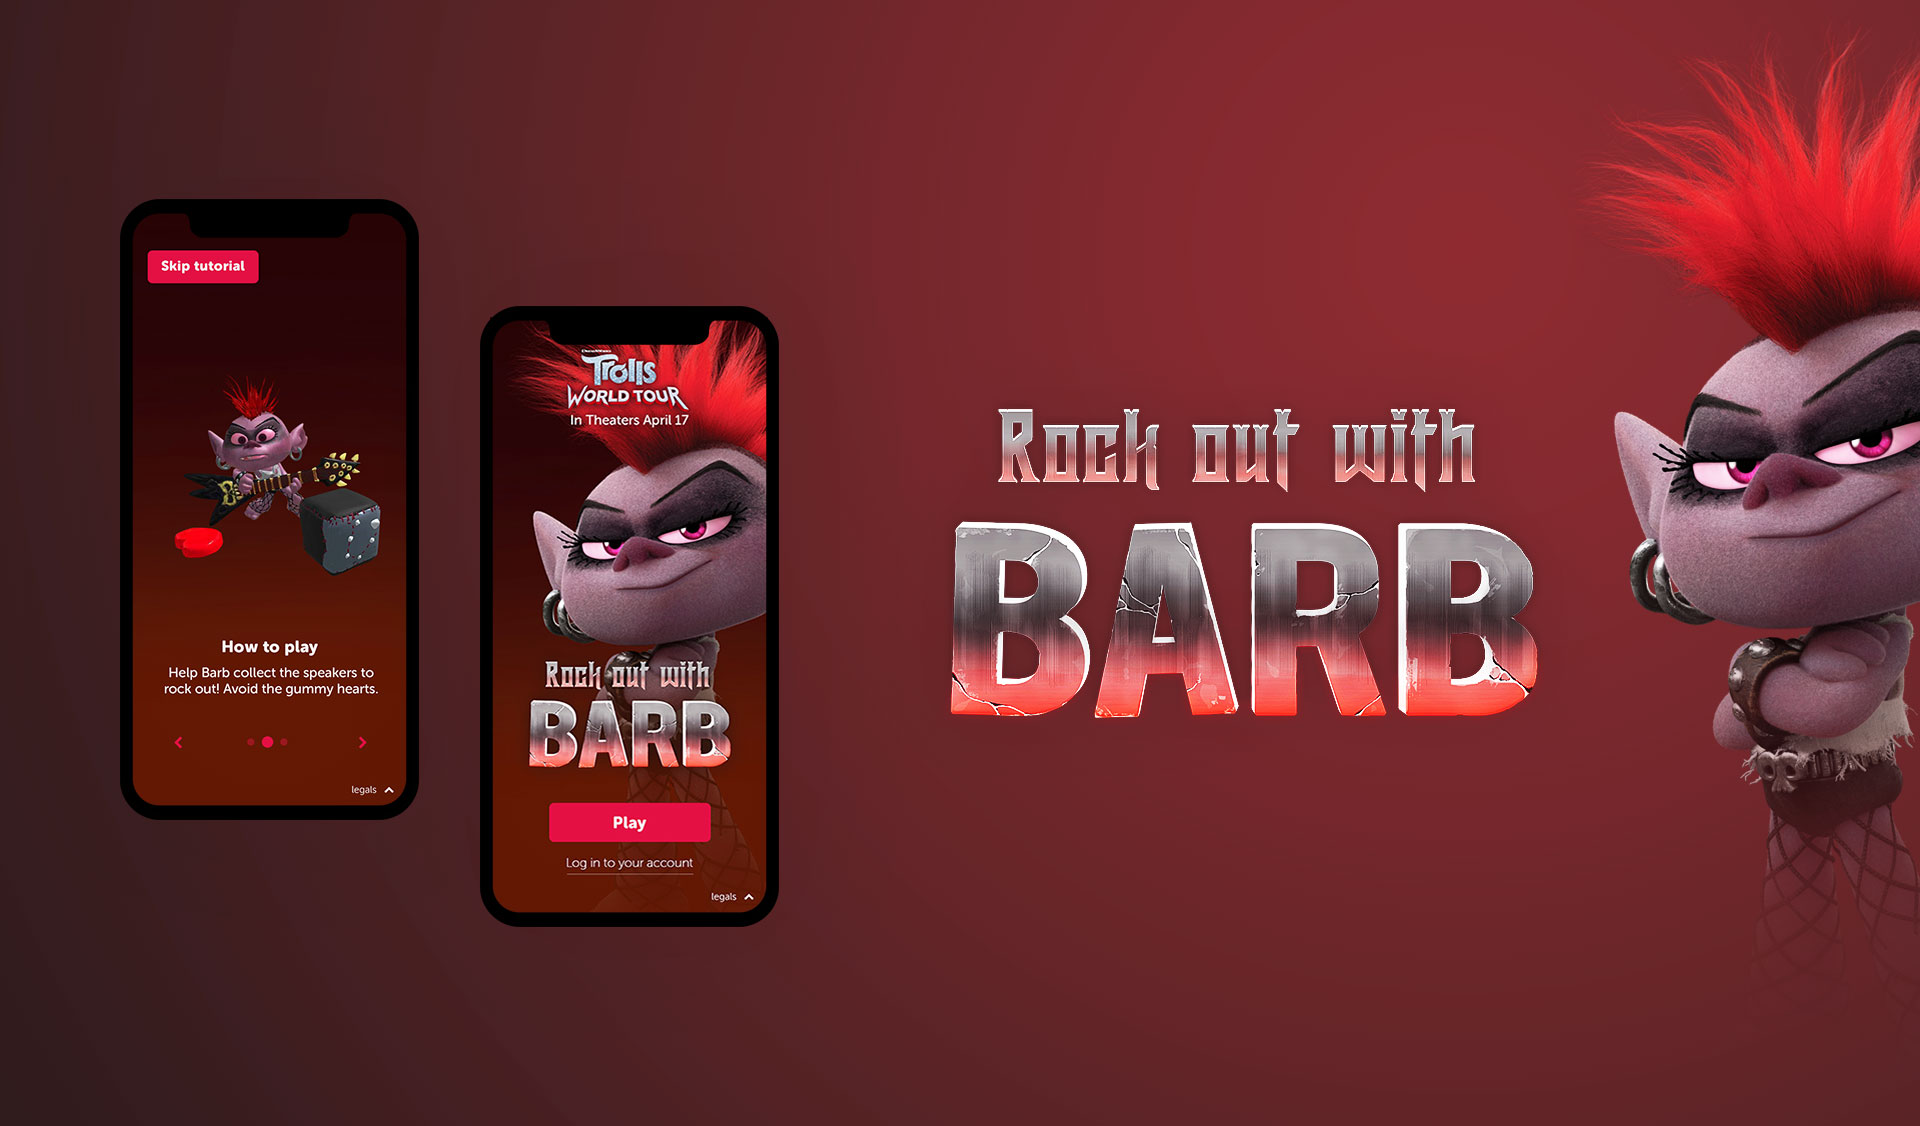 Barb title design and branding